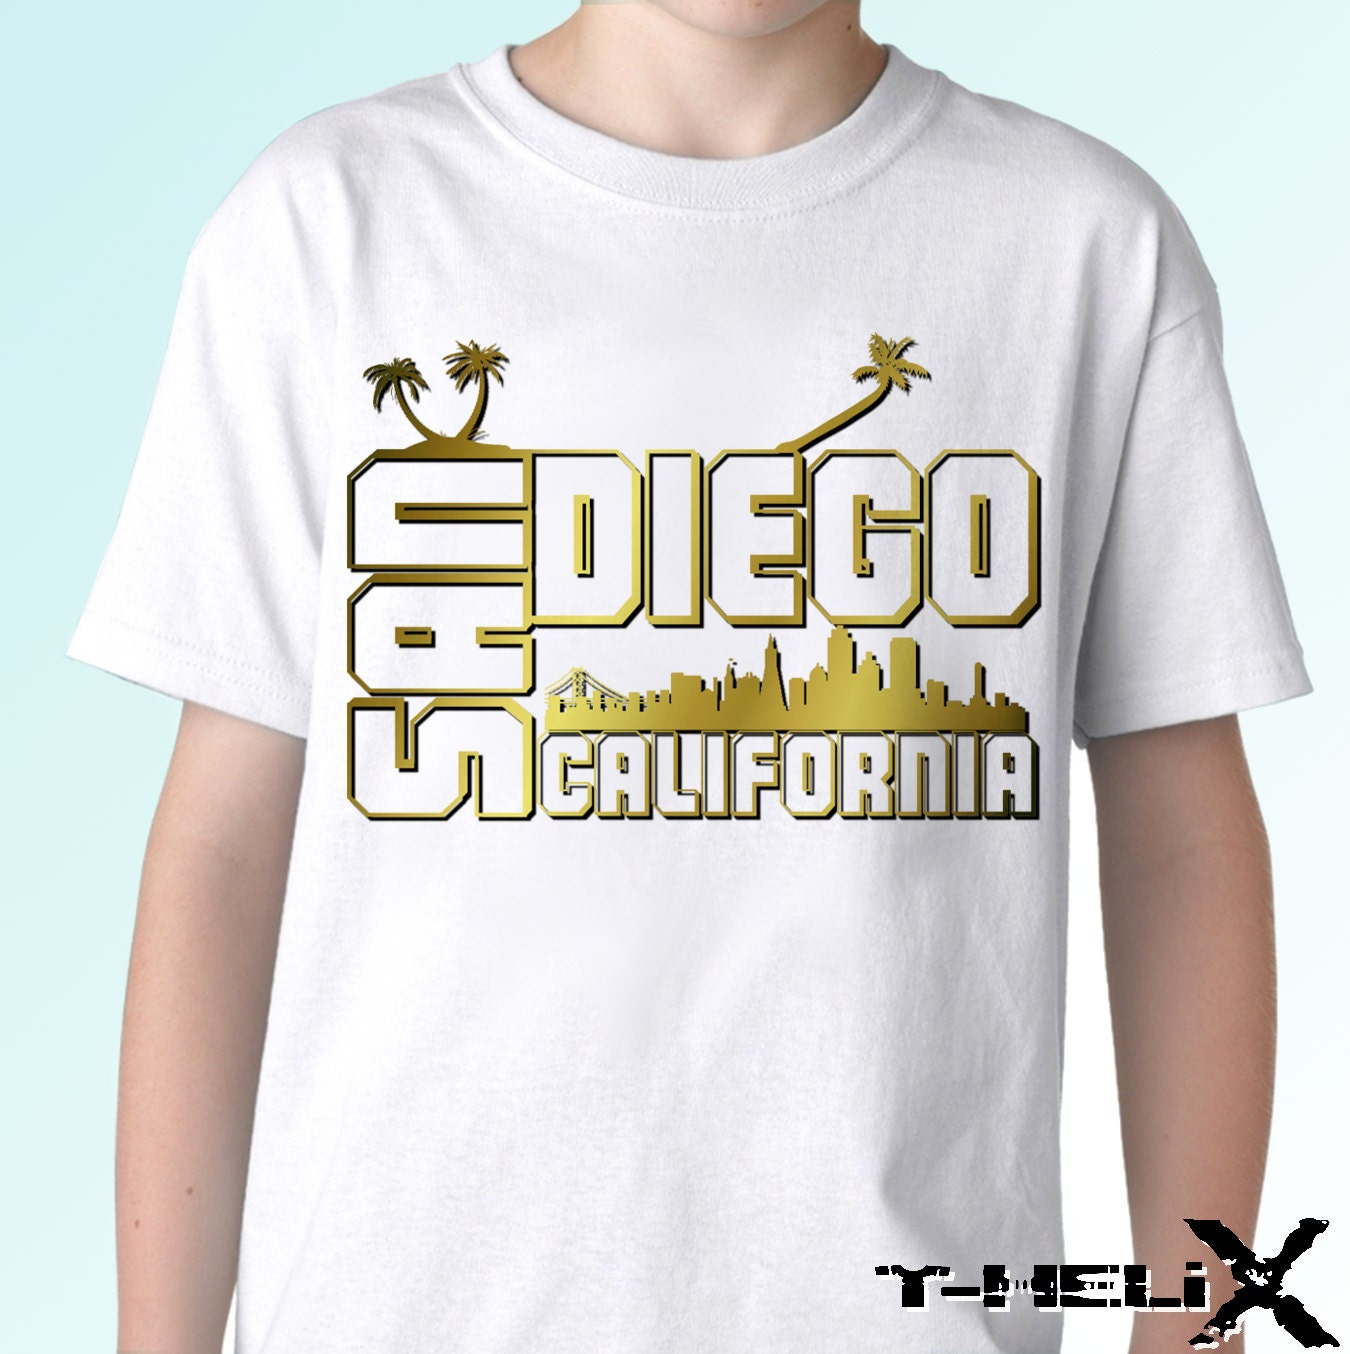 San Diego New White T Shirt City California Us State Print